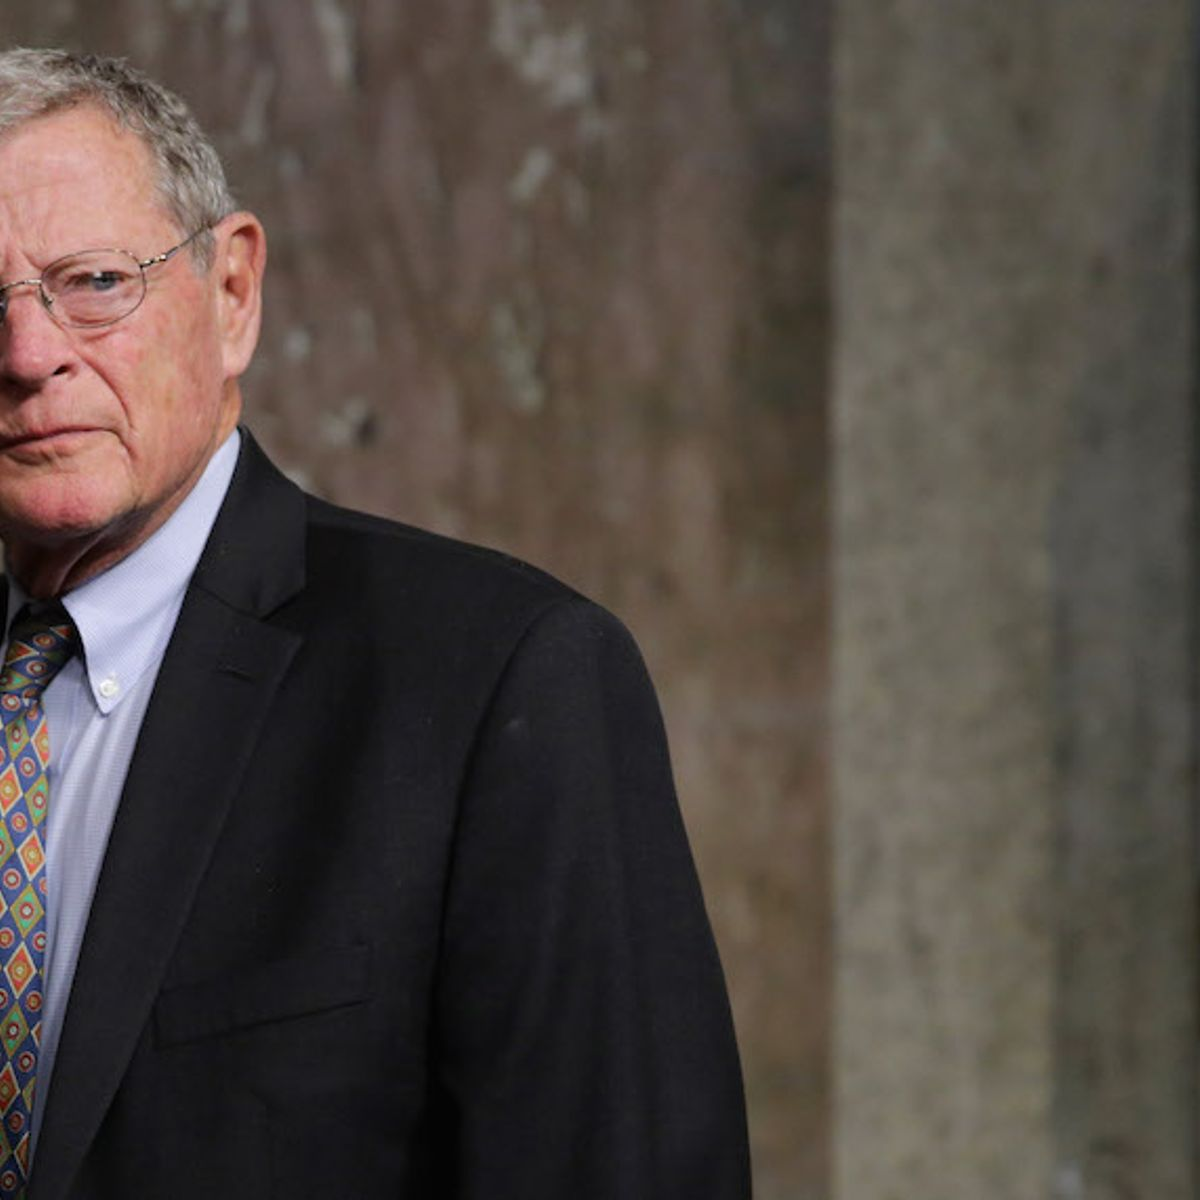 Inhofe is OK flooding his neighbors if it keeps his lake view